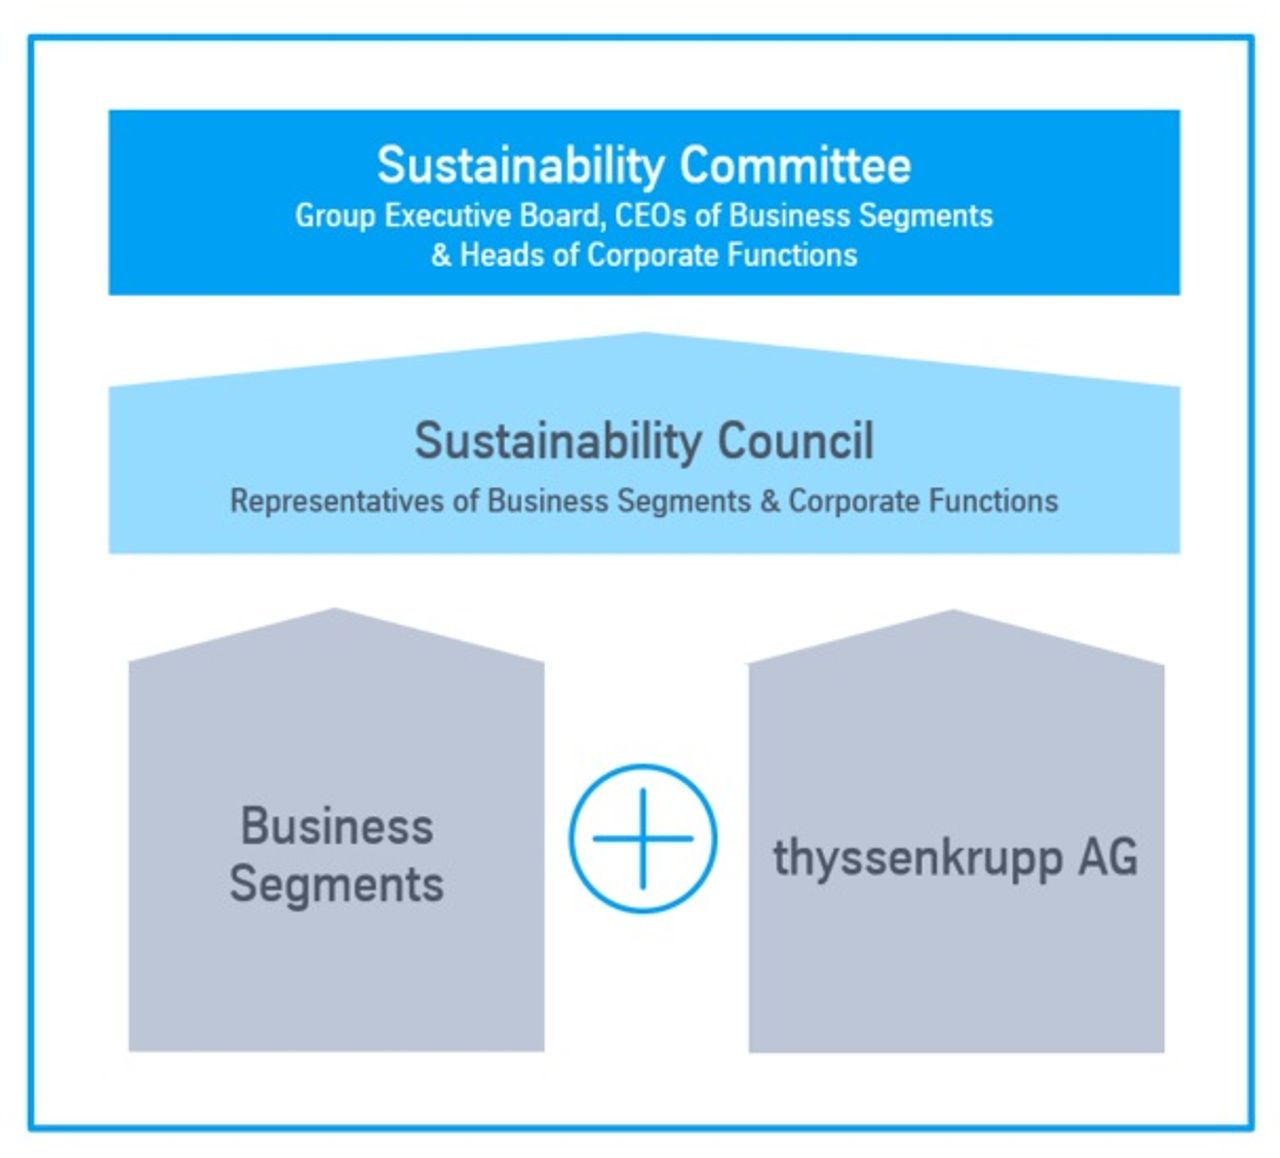 Sustainability organization overview